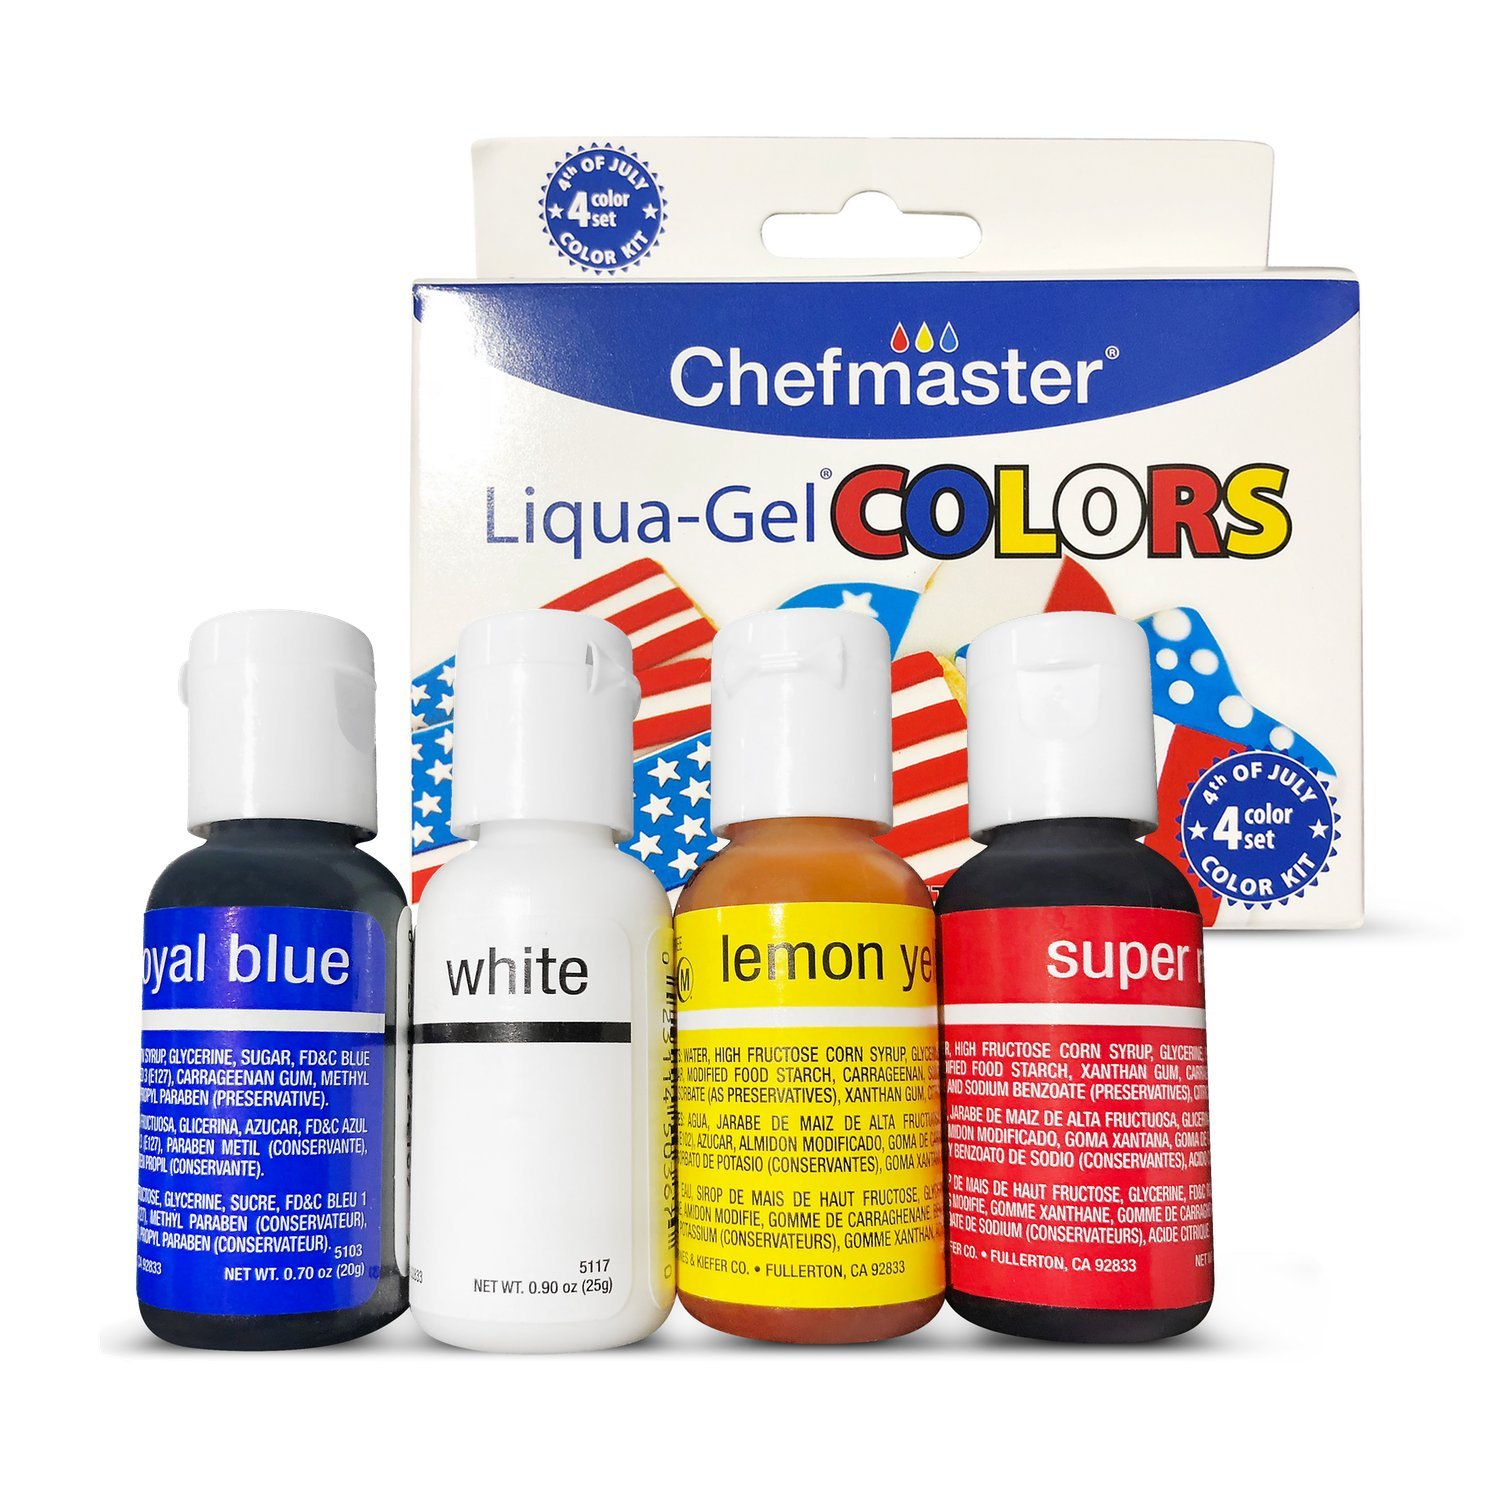 Chefmaster 4th of July Food Coloring Kit, 4-Pack Gluten Free Food Colors for Slime & Cake Decorating.70 oz Concentrated Food Coloring in Royal Blue, Super Red, Lemon Yellow & White by Chefmaster (Image #1)